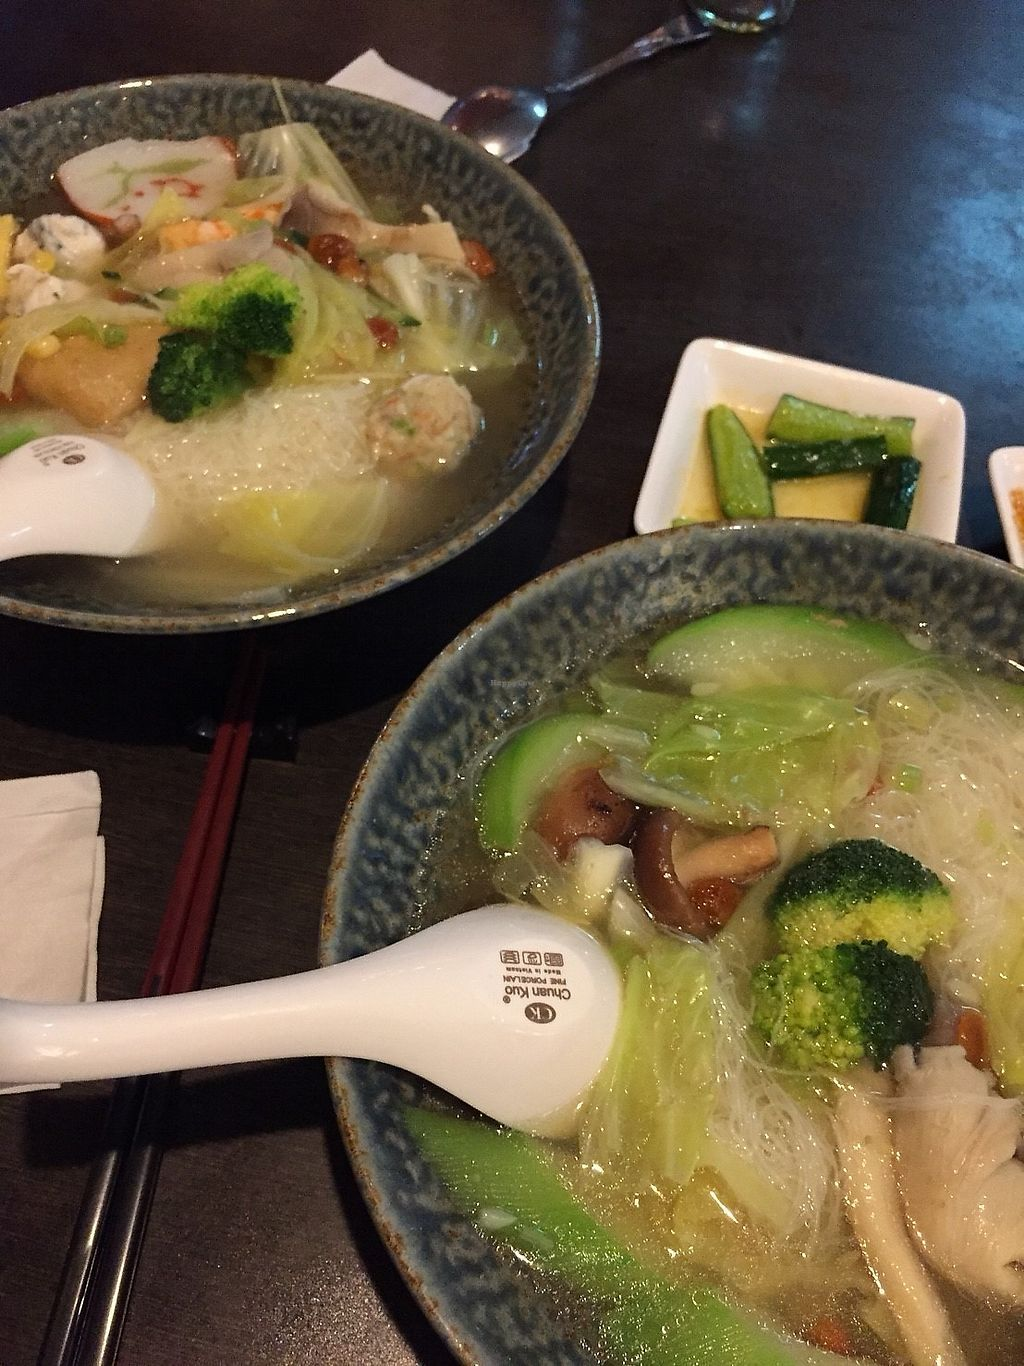 """Photo of Wei Feng Su Shi  by <a href=""""/members/profile/caitjoy"""">caitjoy</a> <br/>Soup noodles <br/> December 5, 2017  - <a href='/contact/abuse/image/73748/332472'>Report</a>"""